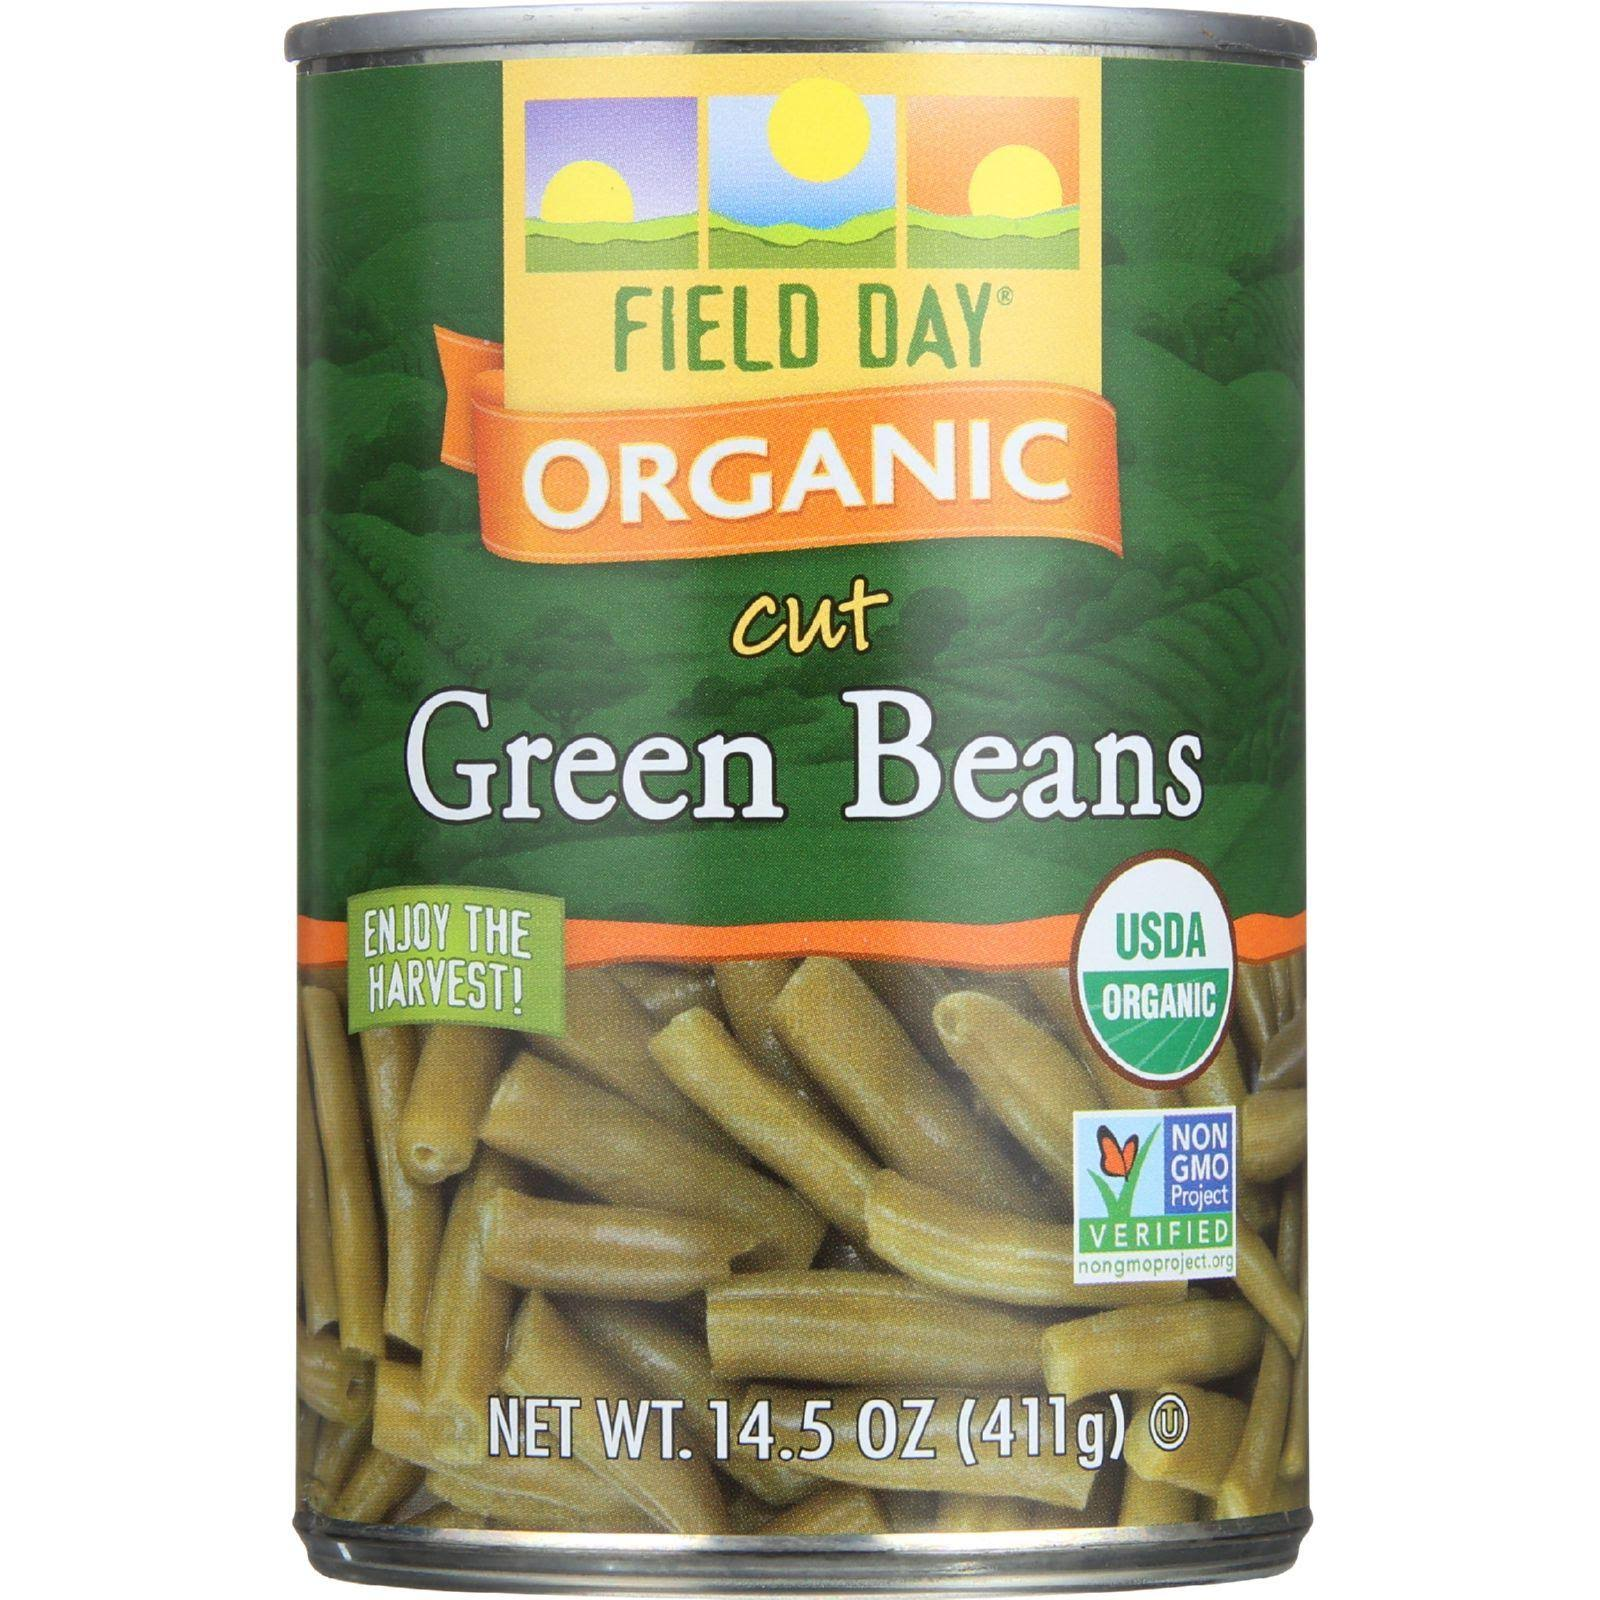 Field Day Organic Cut Green Beans - 411g